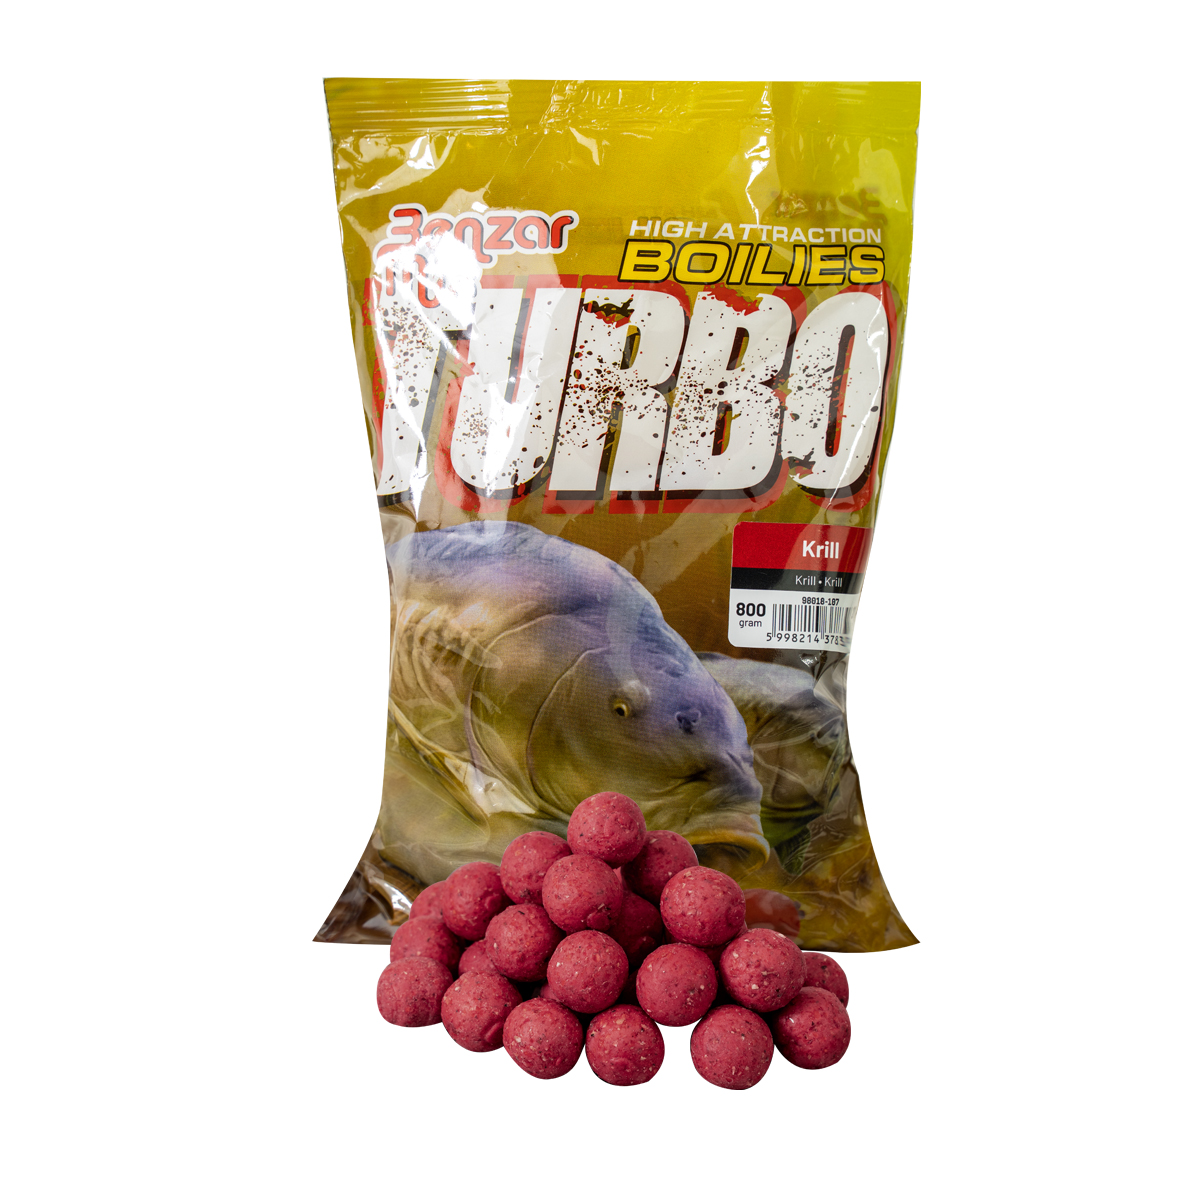 BENZAR TURBO BOILIE 800G 20MM KRILL